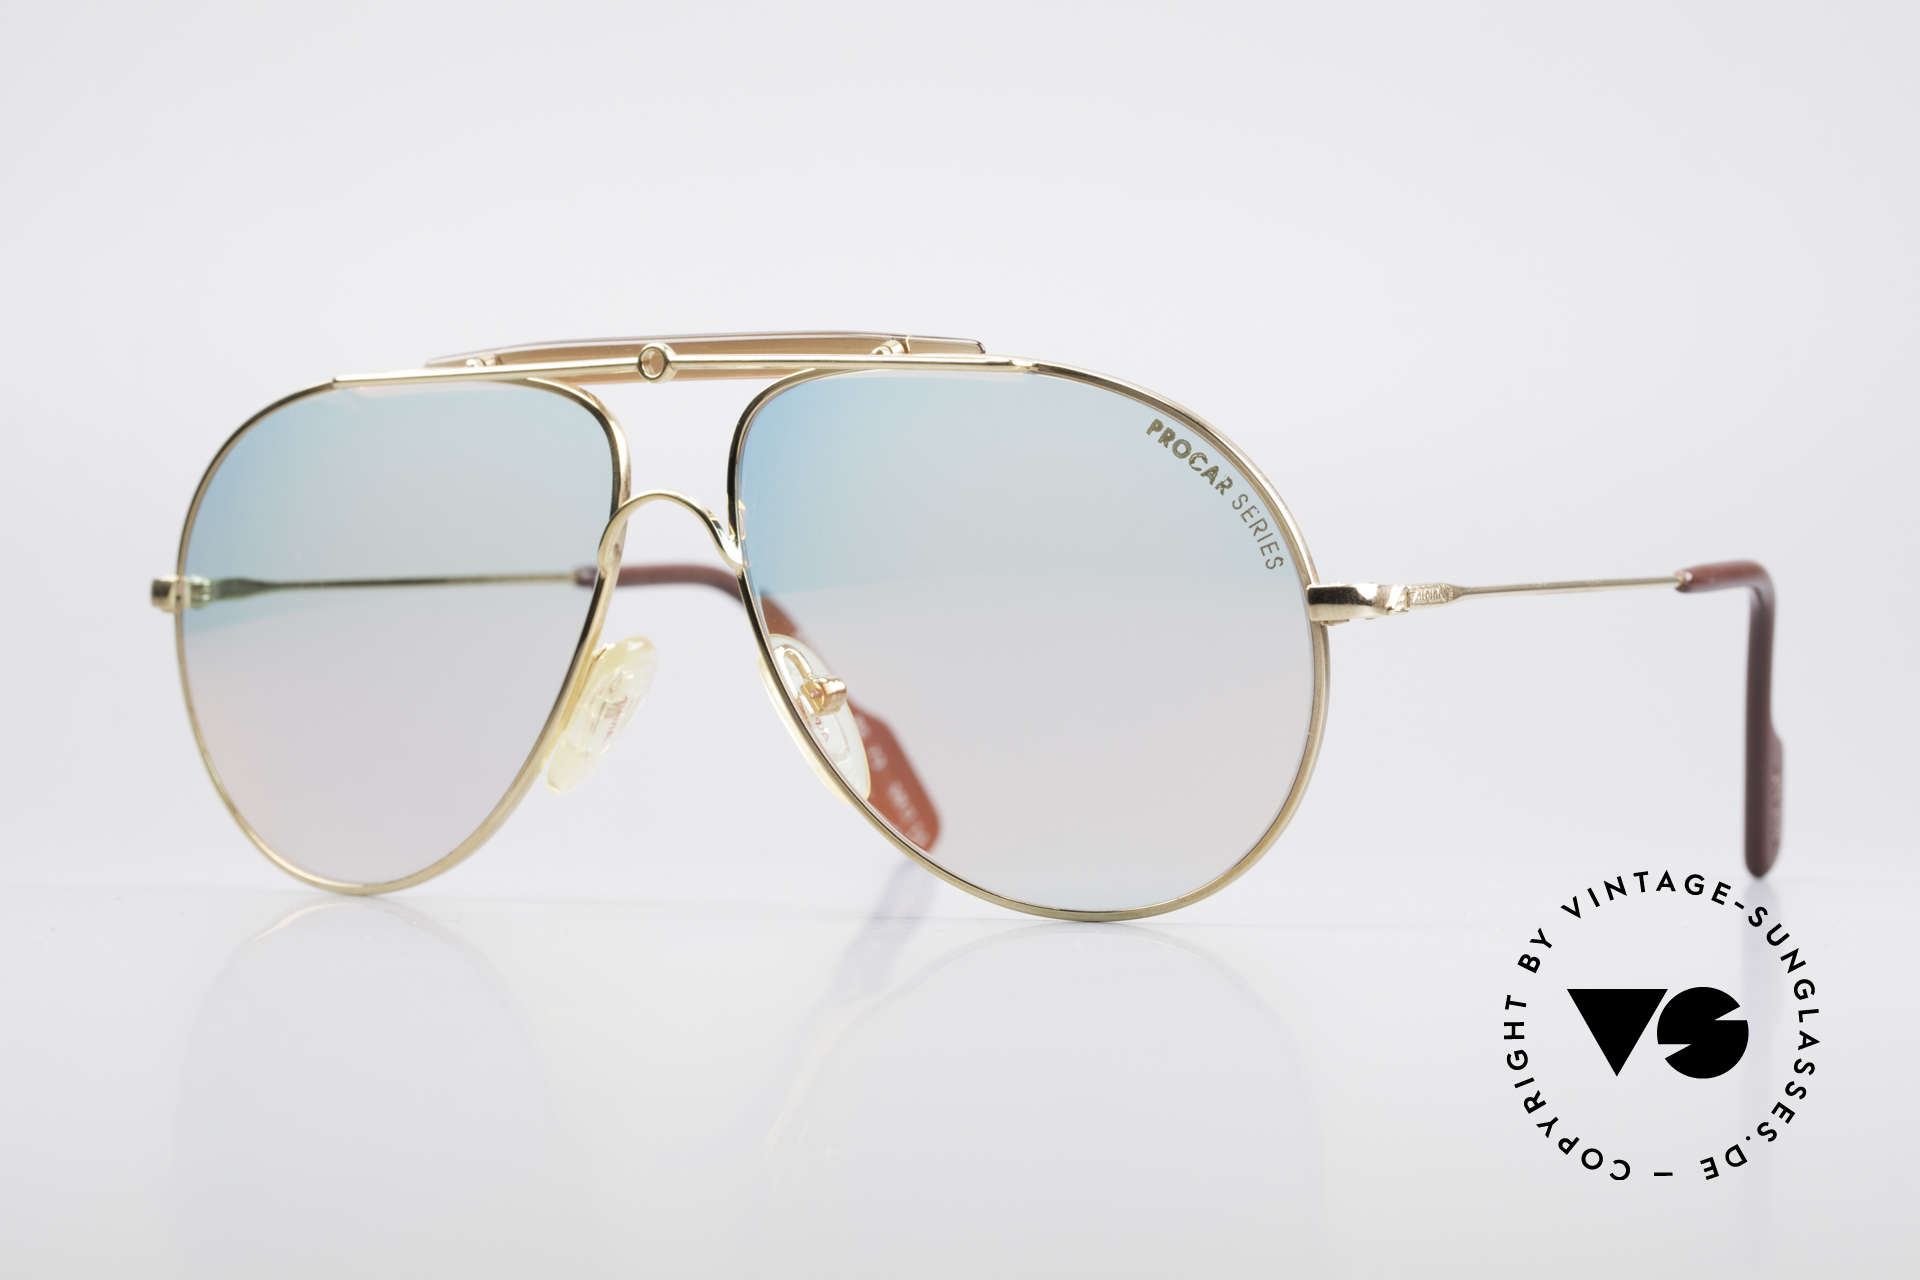 Alpina PC73 ProCar Serie Sunglasses Men, 'PC' = the legendary Procar Series by ALPINA of the 90's, Made for Men and Women